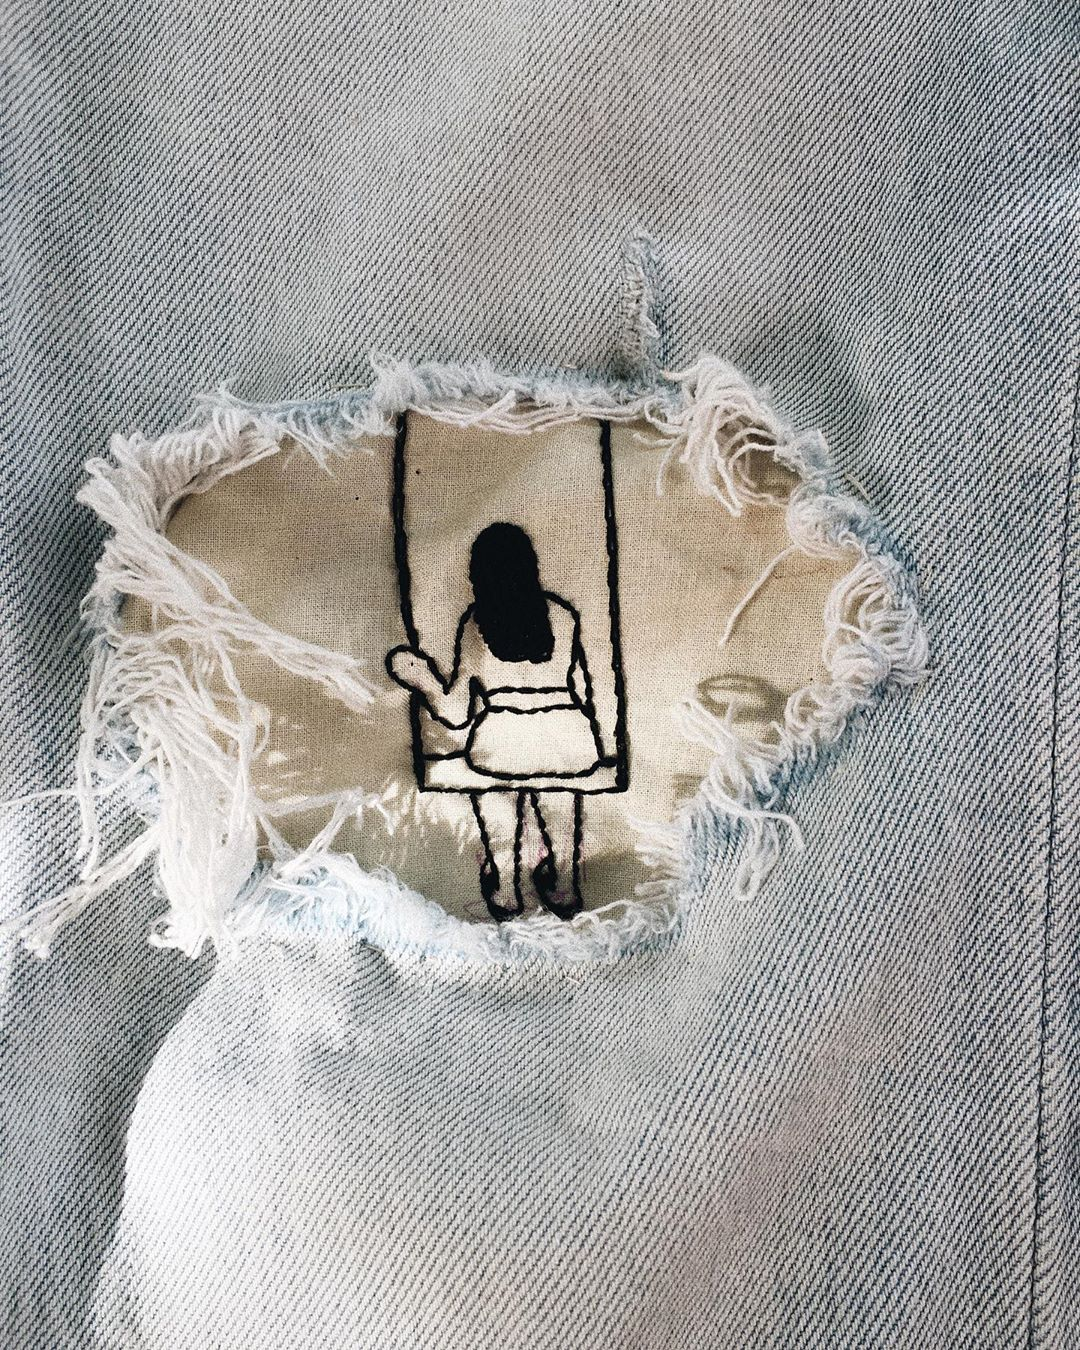 visible mending inspiration with hand embroidery, girl on a swing patched on the jeans